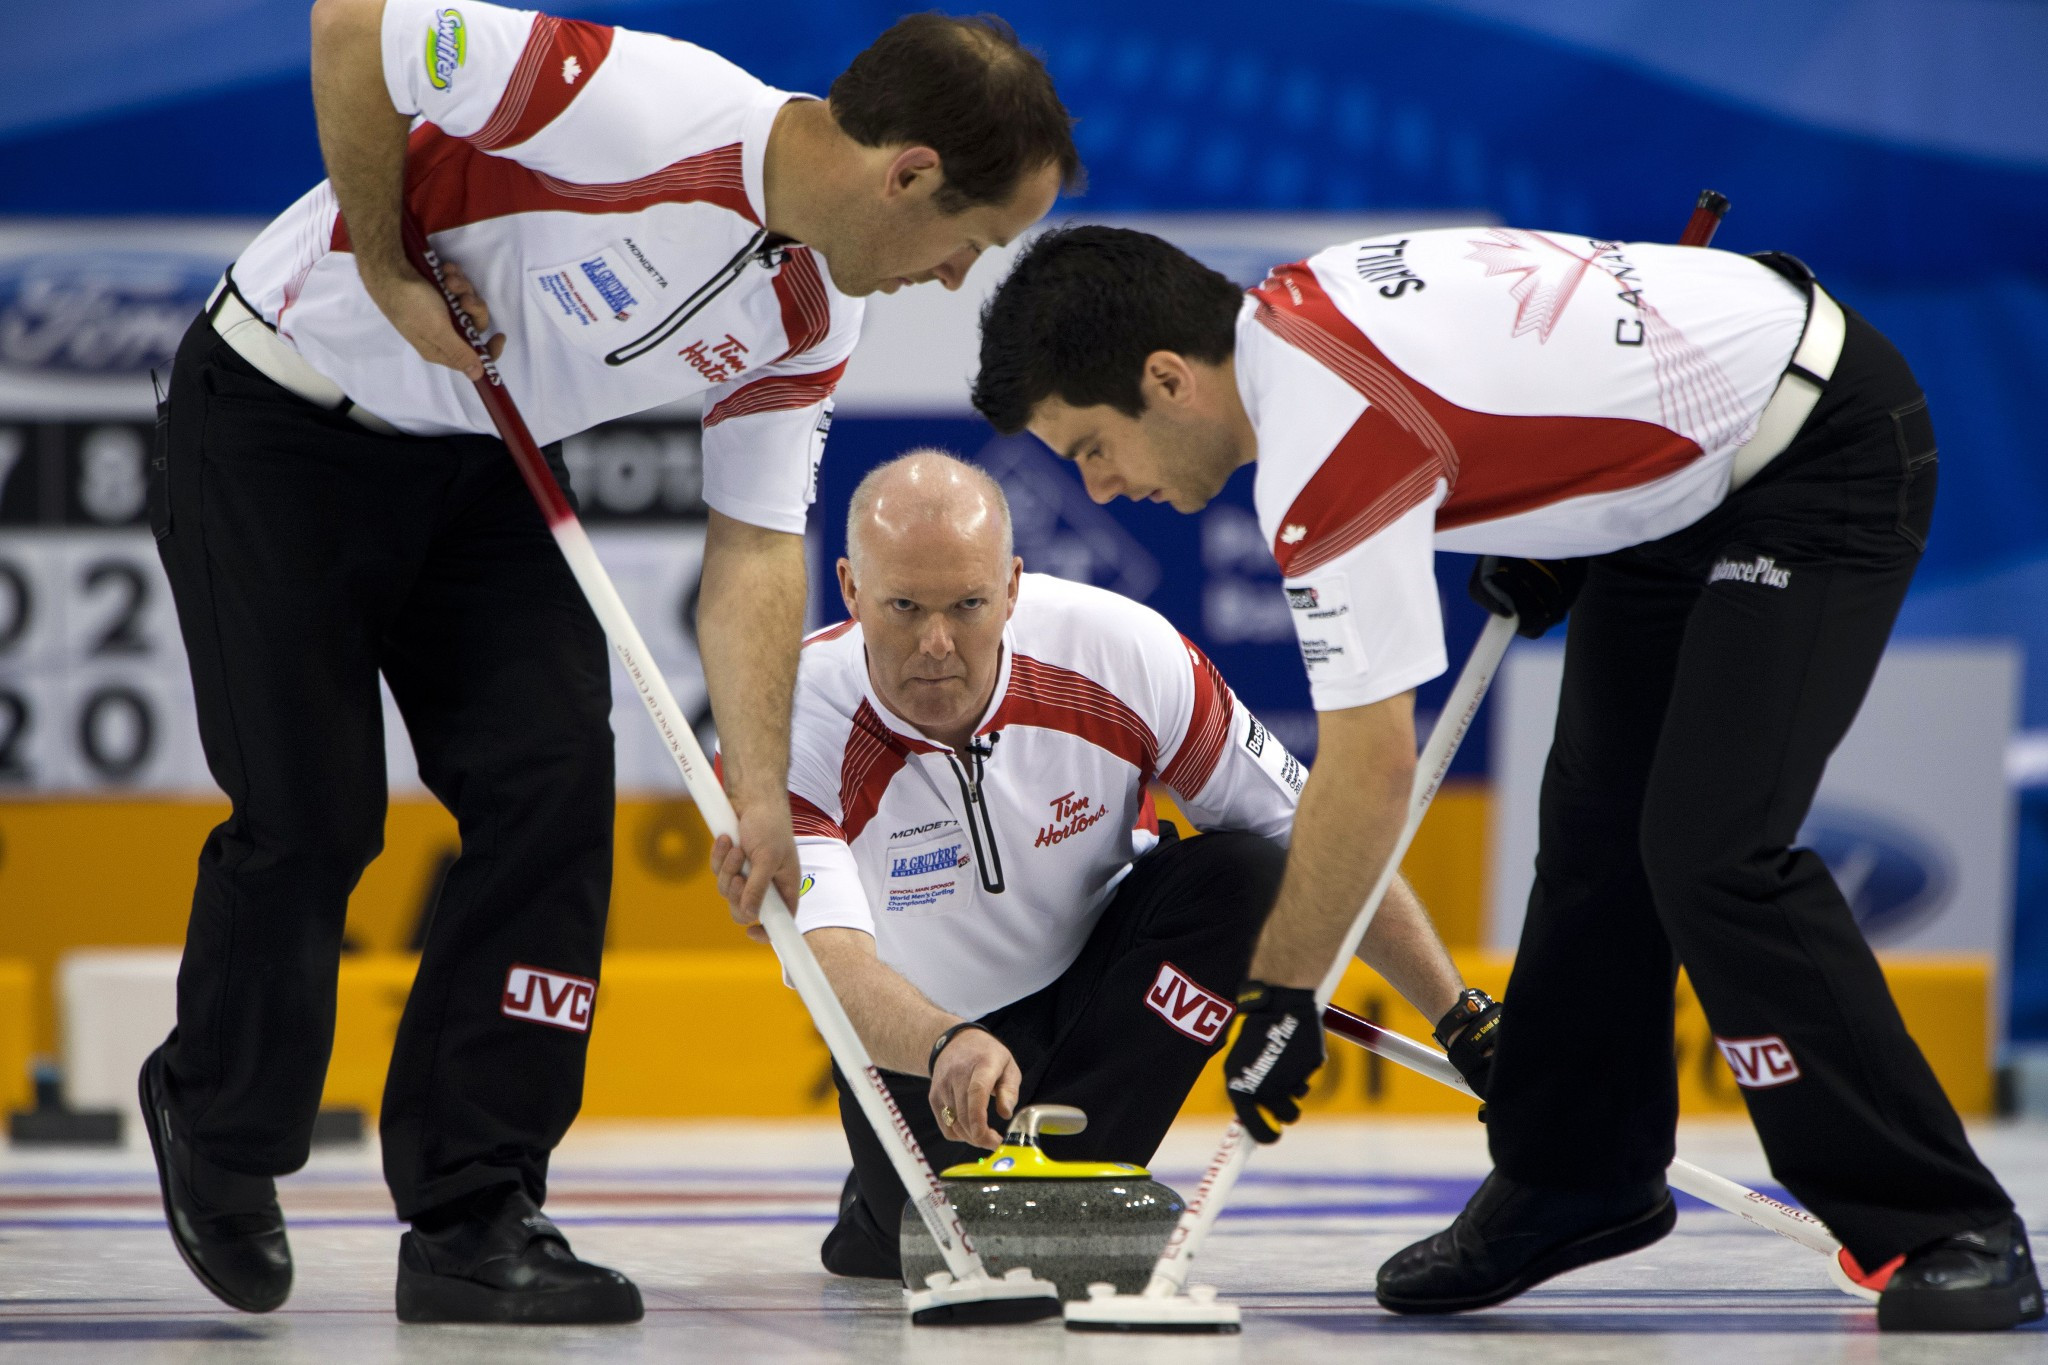 The deal means Canada will host a senior World Championship on an annual basis  ©Getty Images